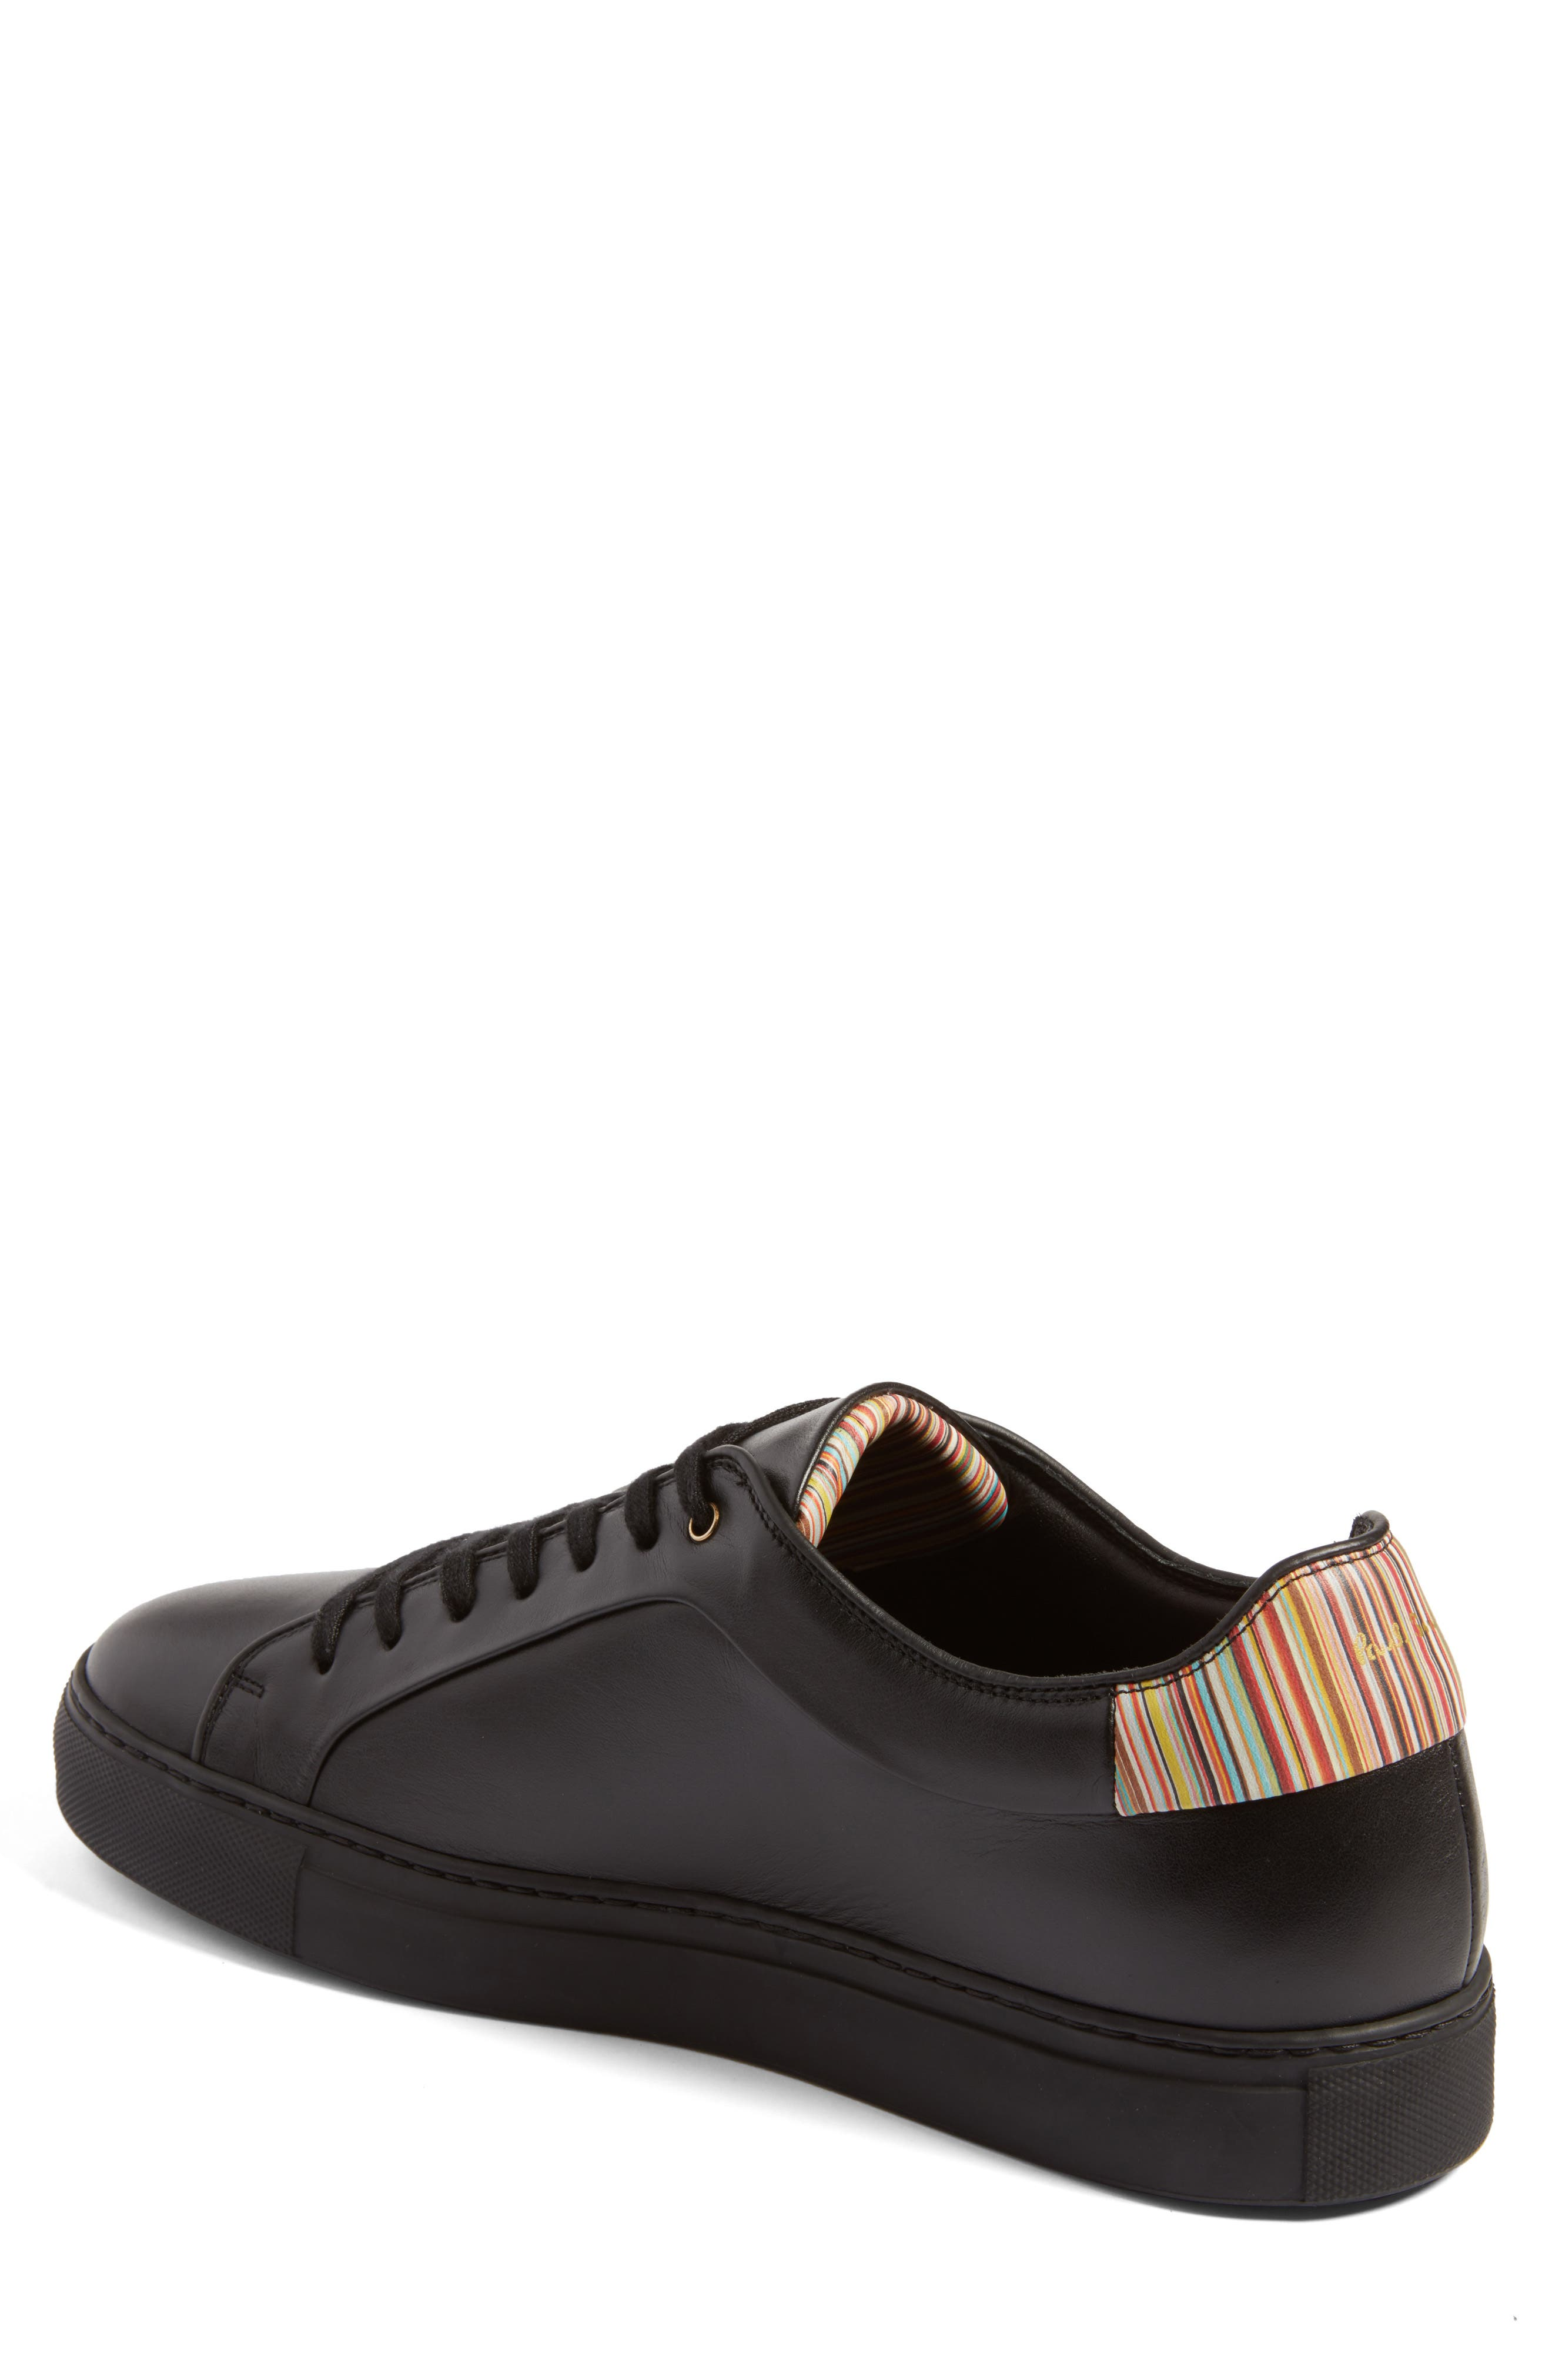 Alternate Image 2  - Paul Smith Basso Sneaker (Men)